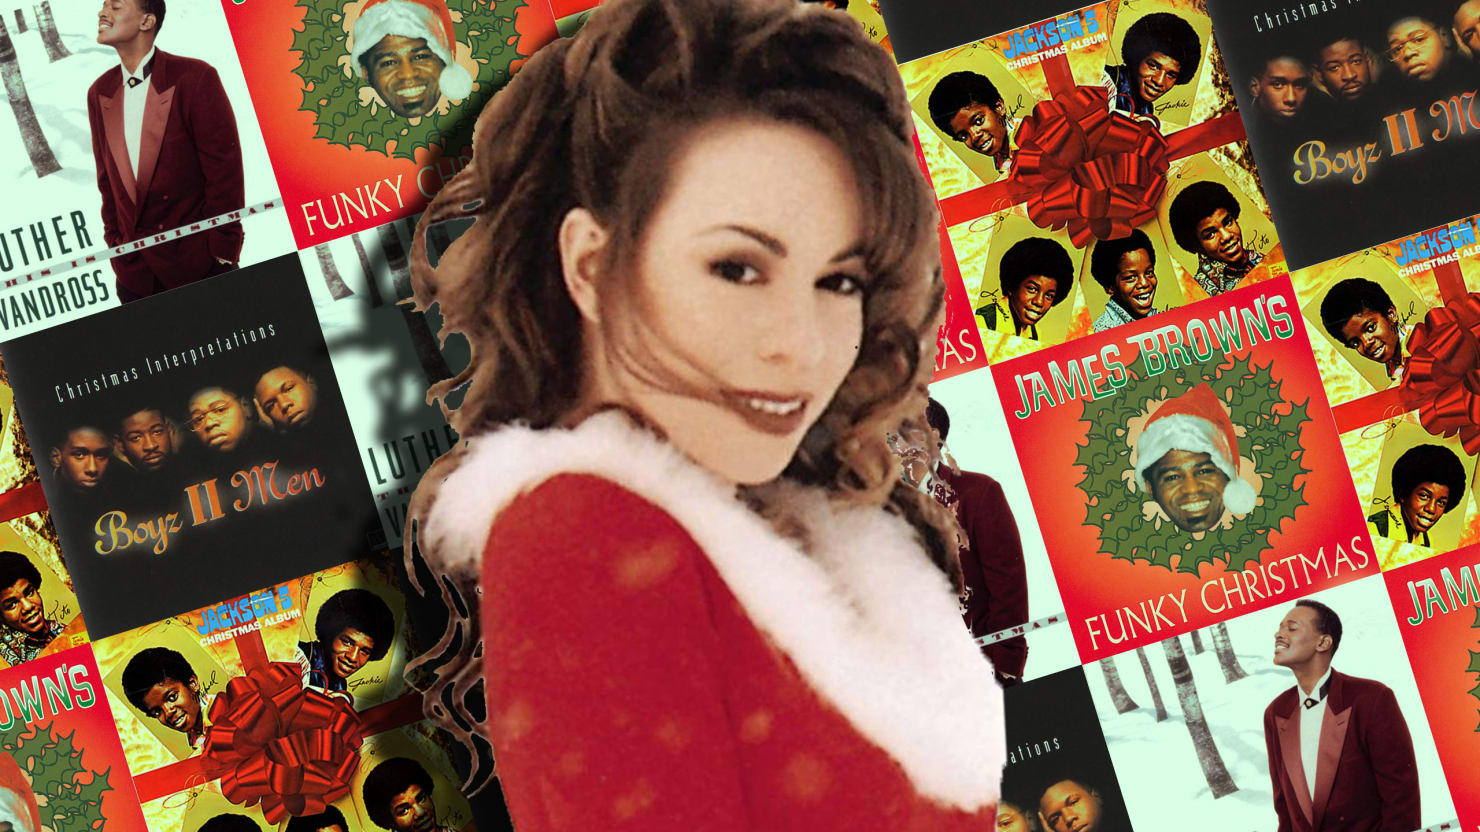 10 Best Christmas Soul and R&B Albums: Mariah Carey, Boyz II Men ...